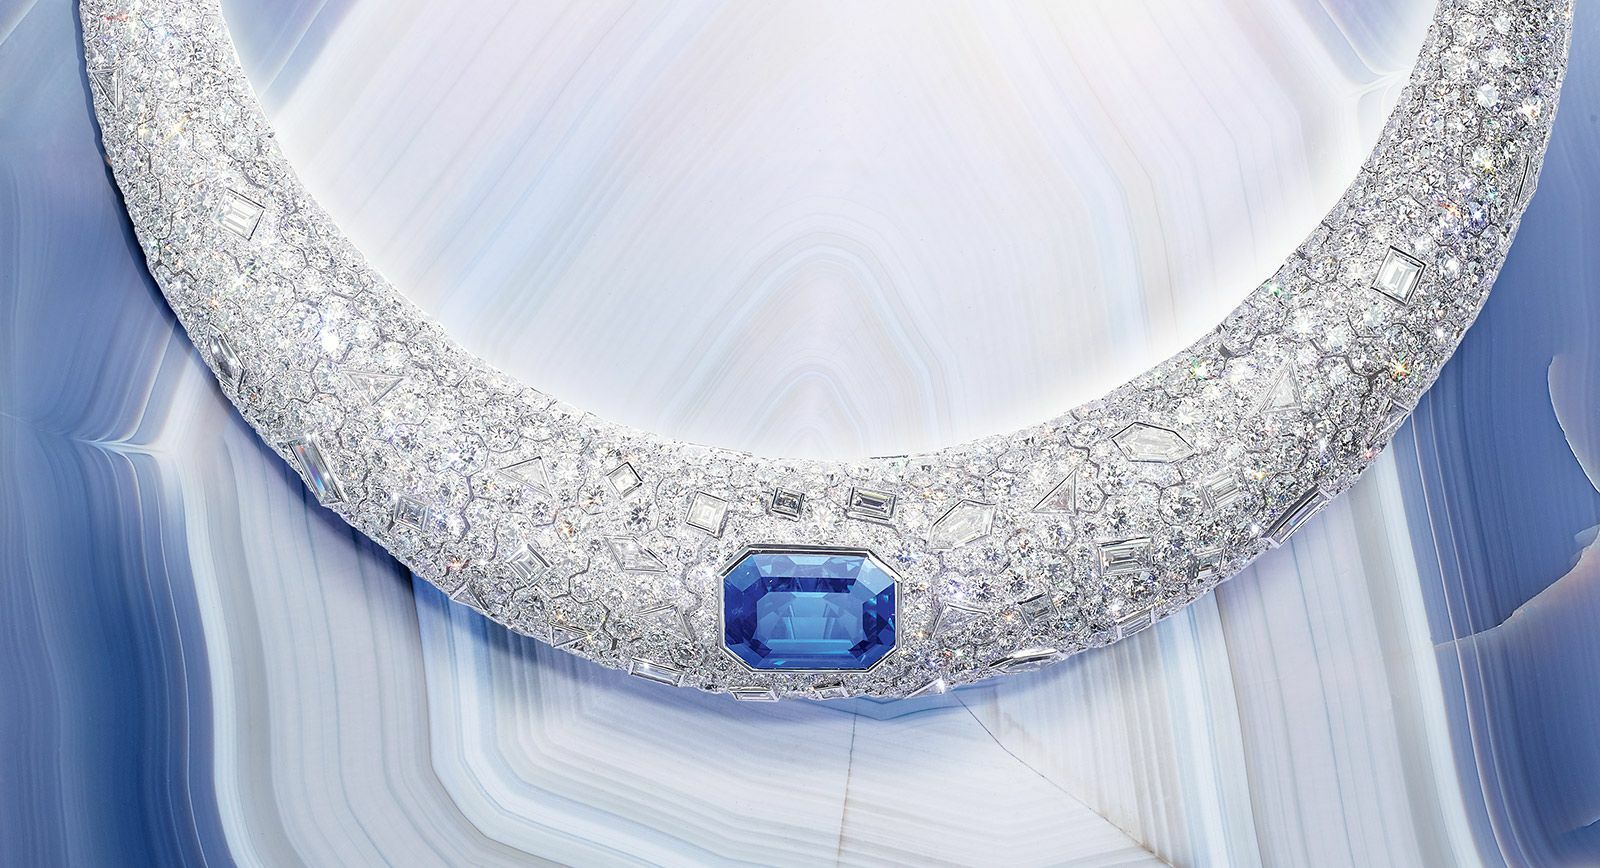 Piaget: Playing with light in the new high jewellery collection 'Sunlight Escape'